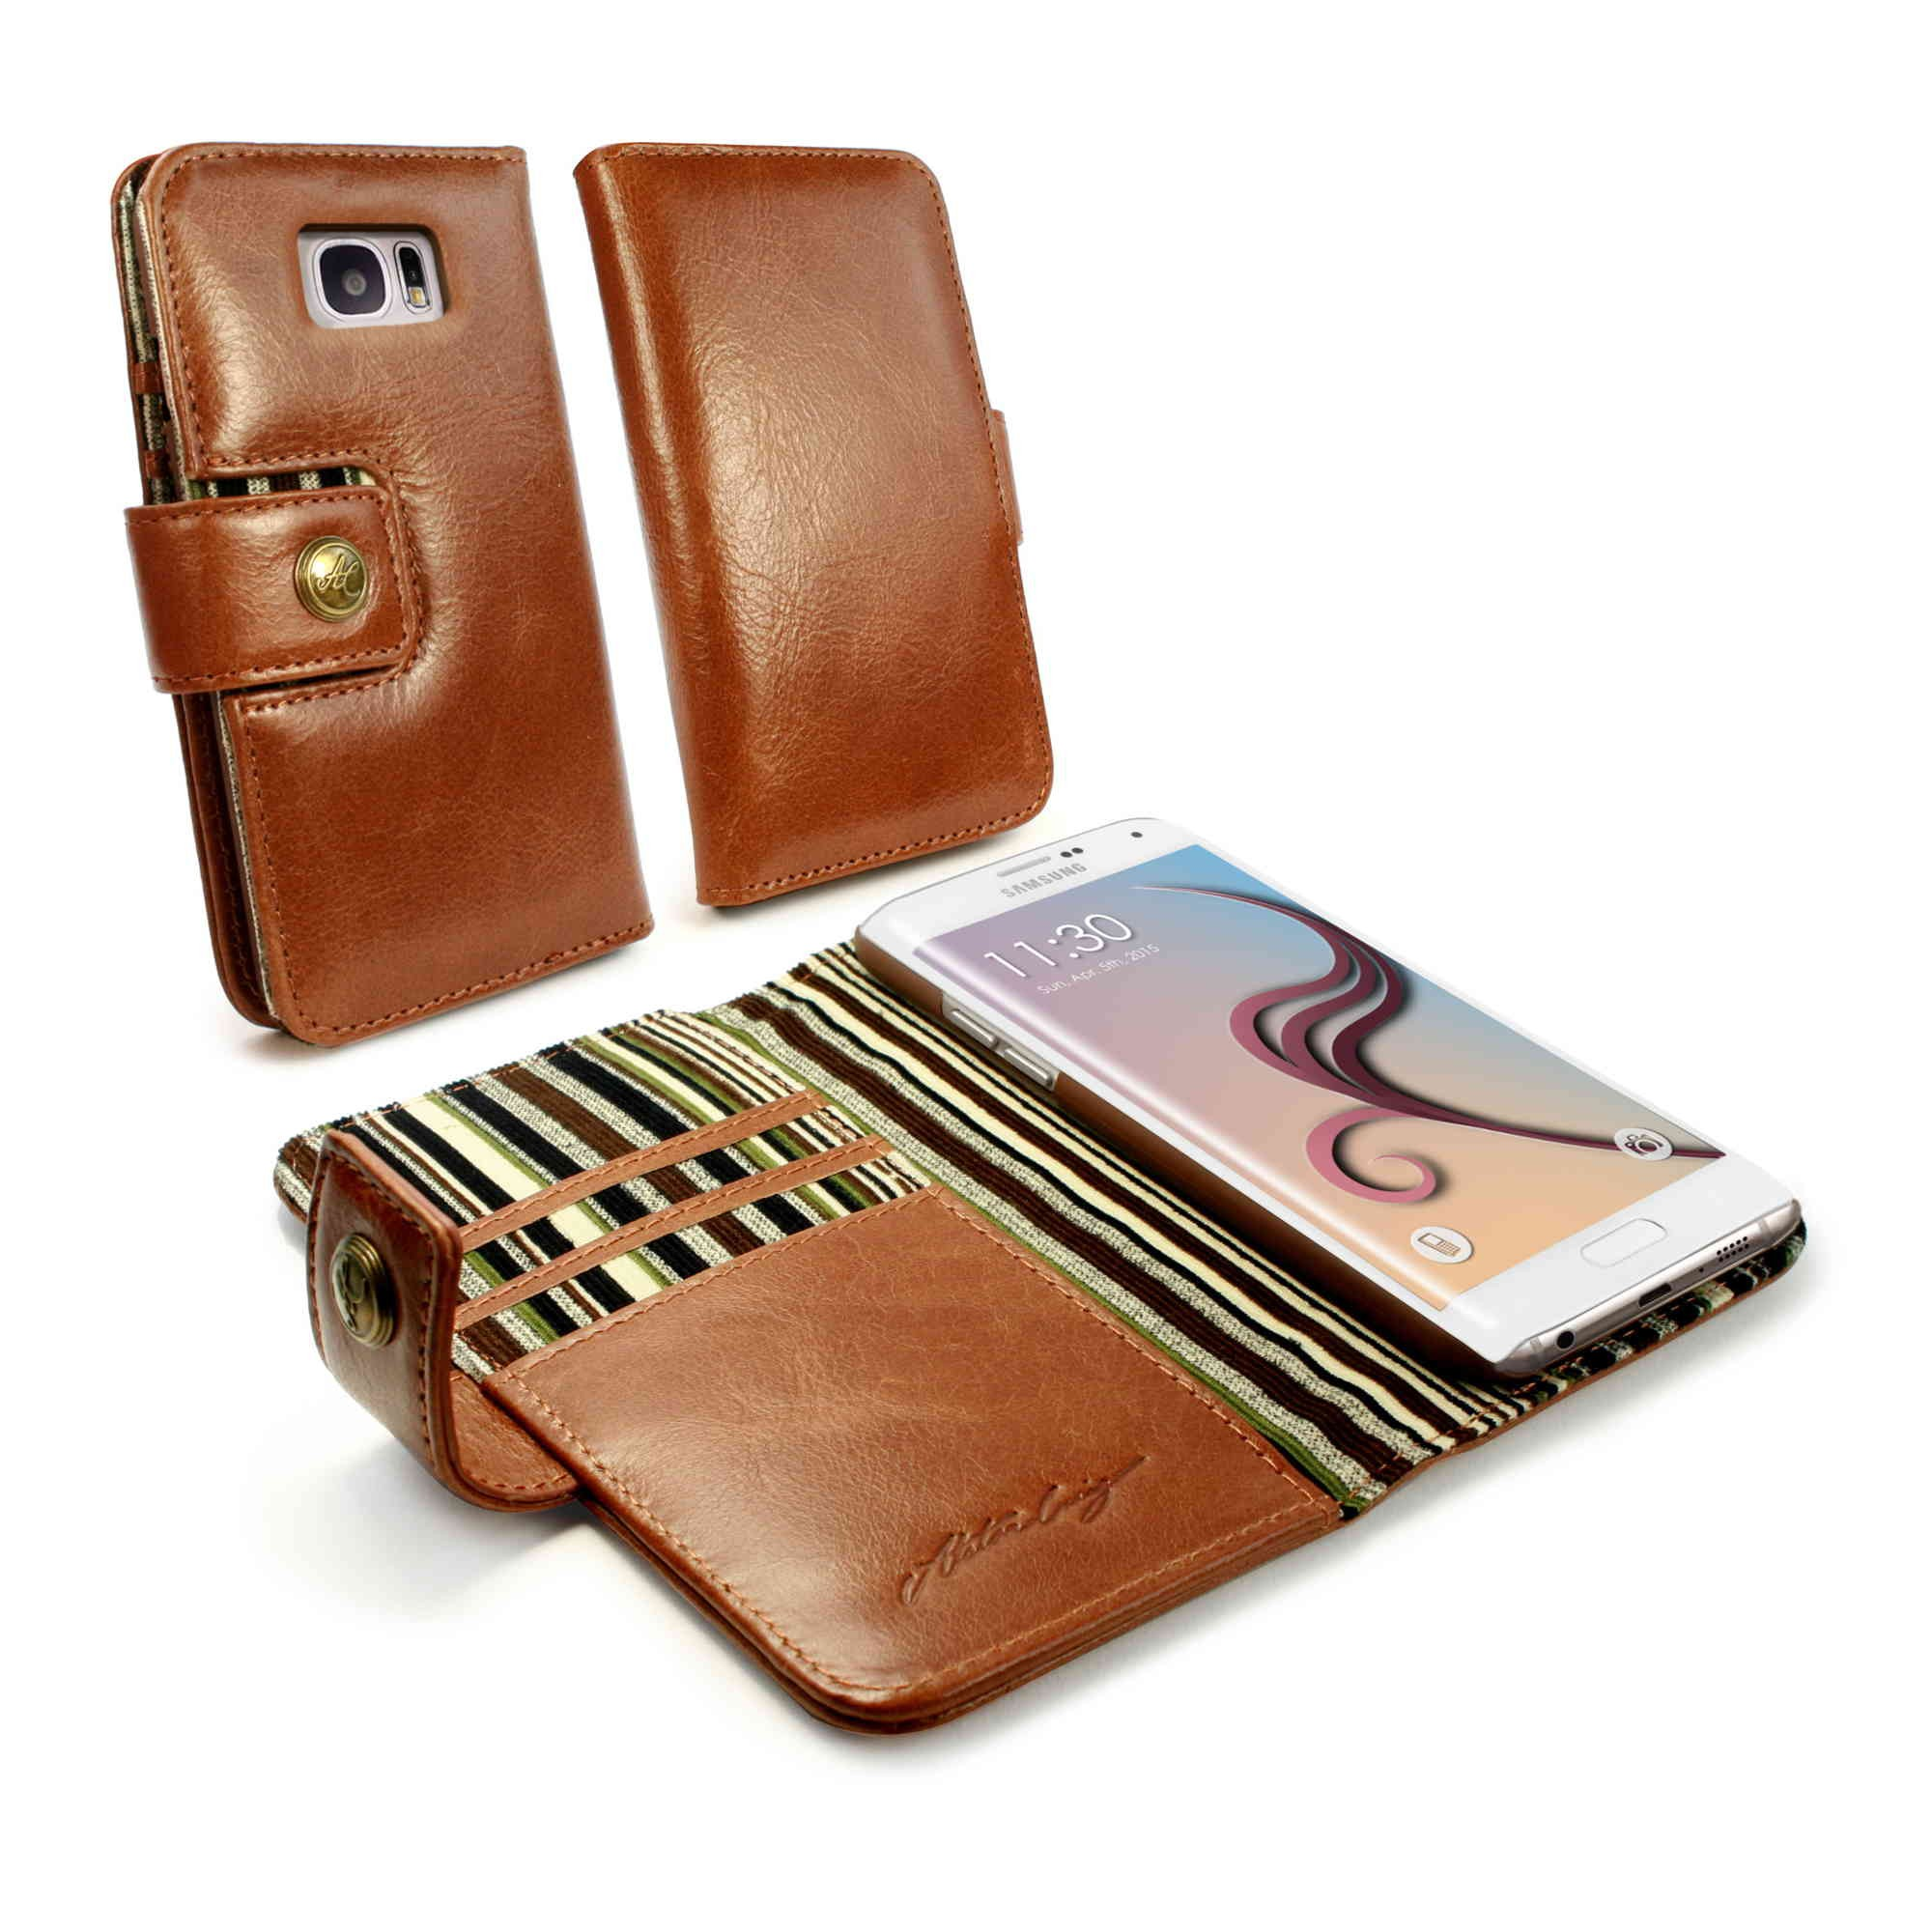 best service 0f092 83764 Details about Alston Craig Alston Craig Genuine Leather Folio Wallet Case  Cover for Galaxy S6